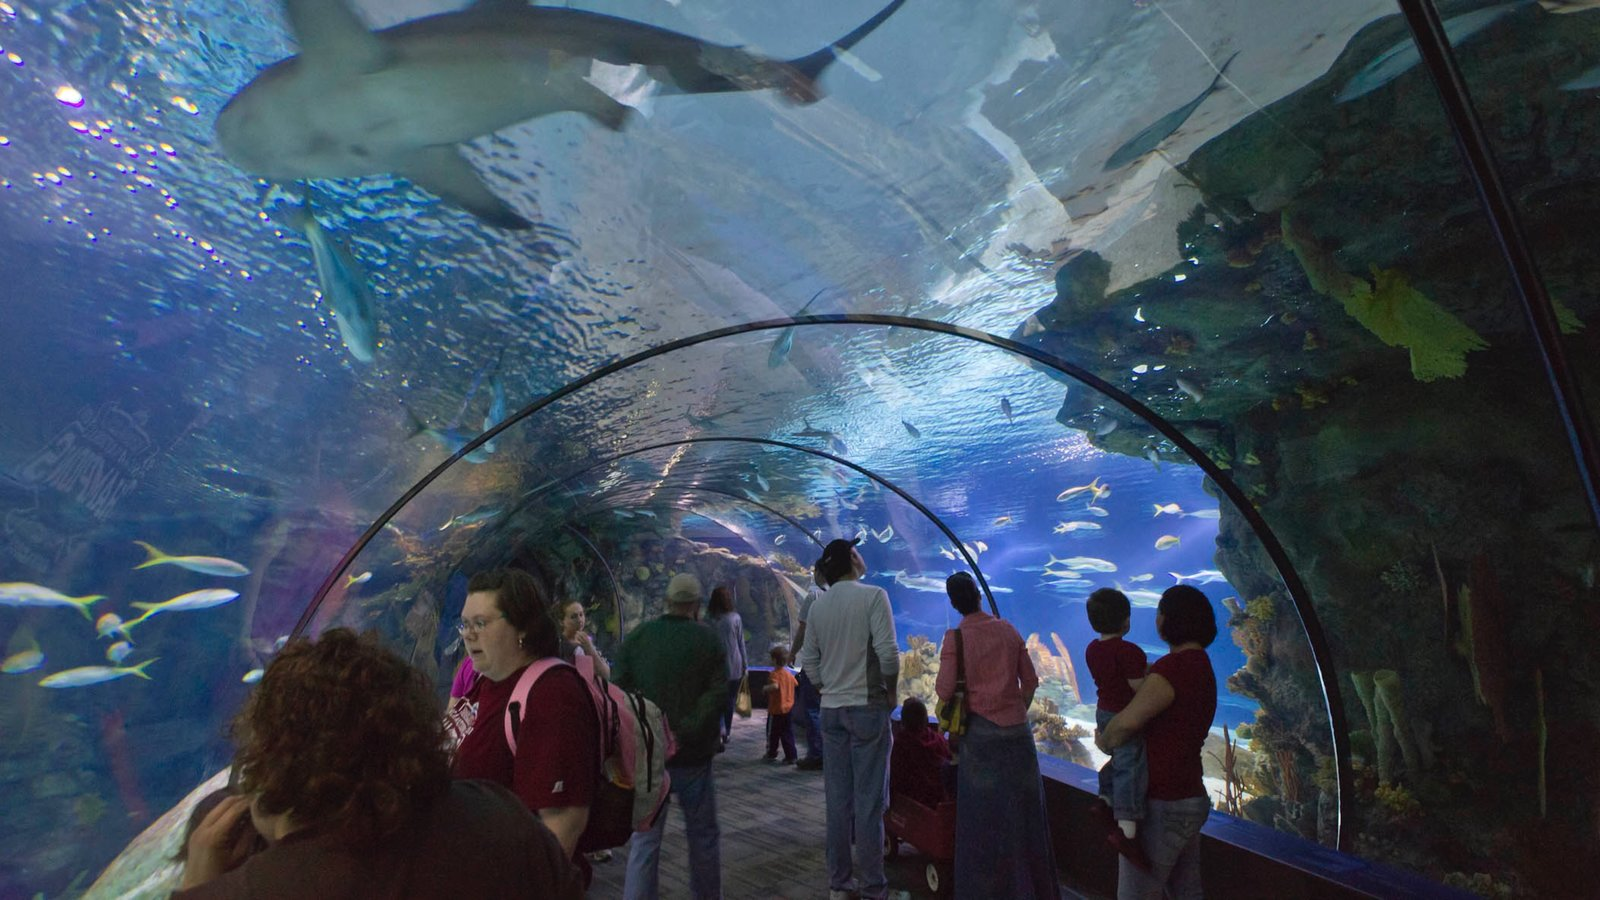 Henry Doorly Zoo which includes interior views dangerous animals and marine life & Henry Doorly Zoo \u0026 Aquarium Pictures: View Photos \u0026 Images of Henry ...